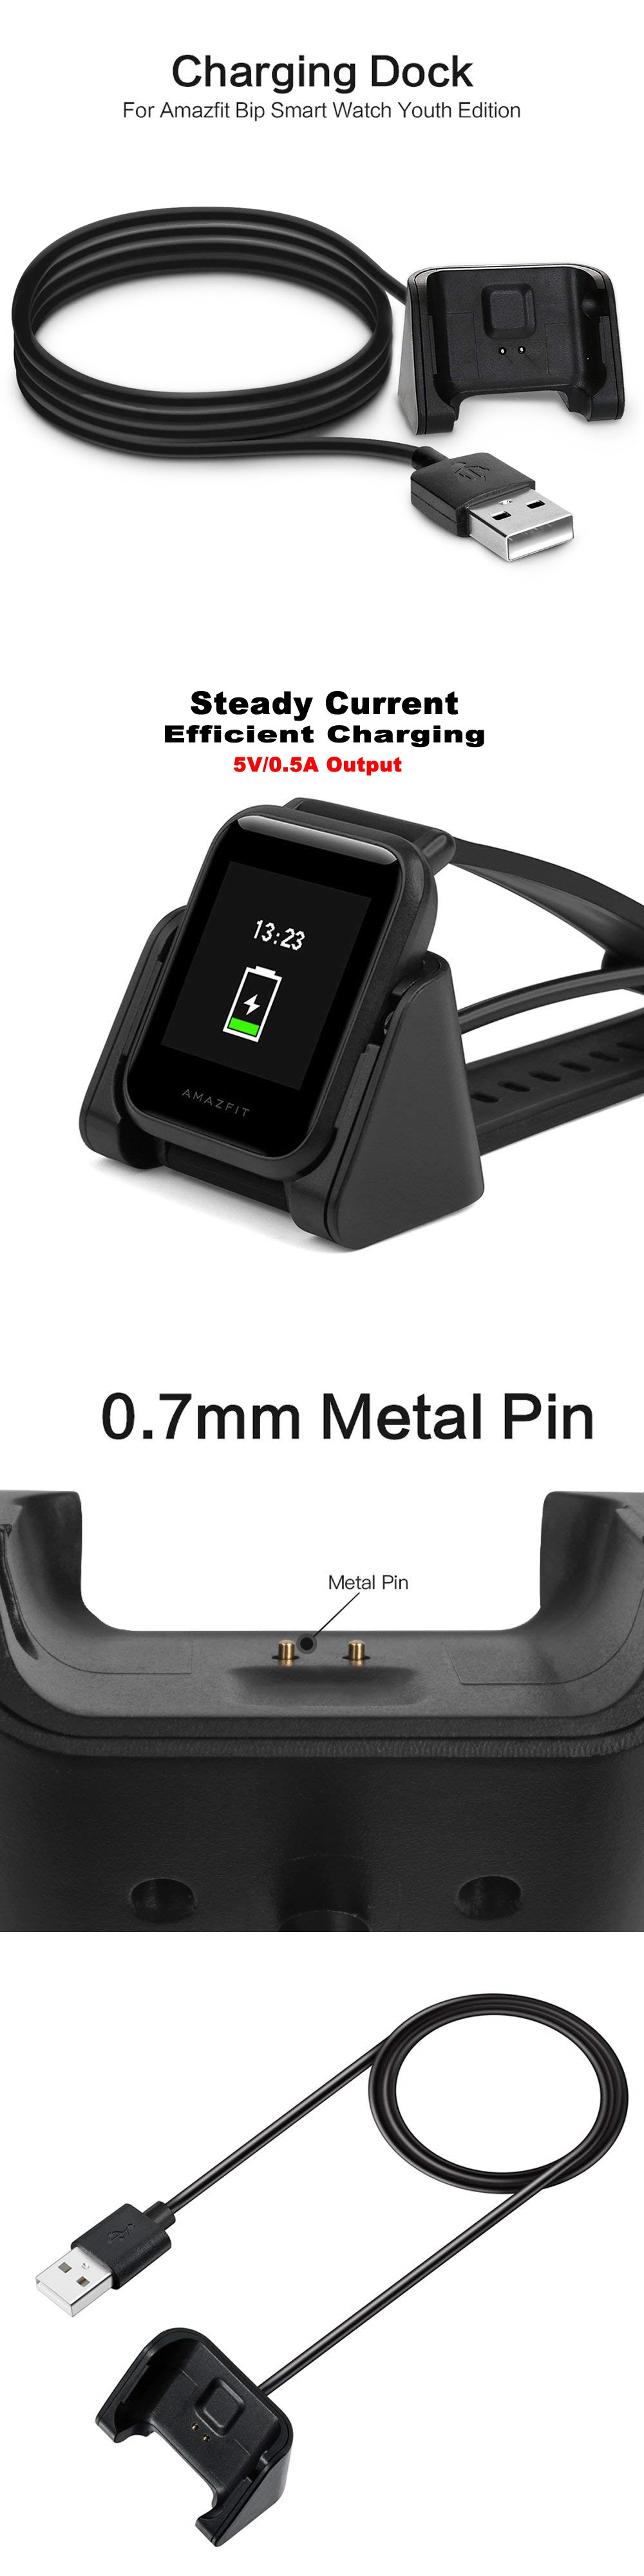 JOFLO USB Fast Charger Charging Dock for Huami Amazfit Bip Smart Watch- Black